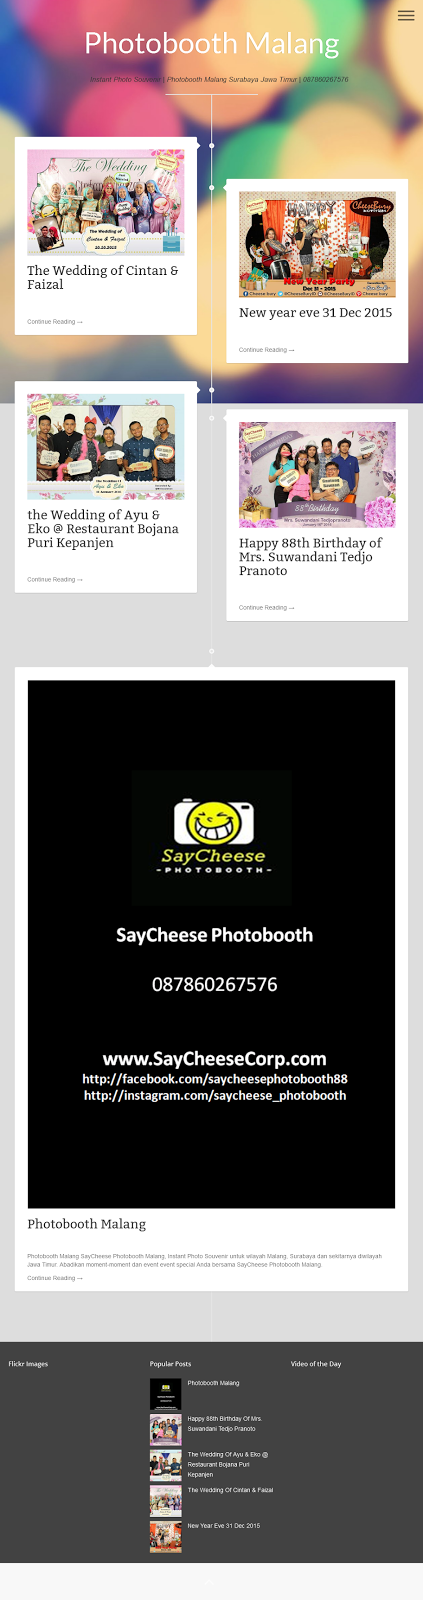 http://photoboothmalang.saycheesecorp.com/